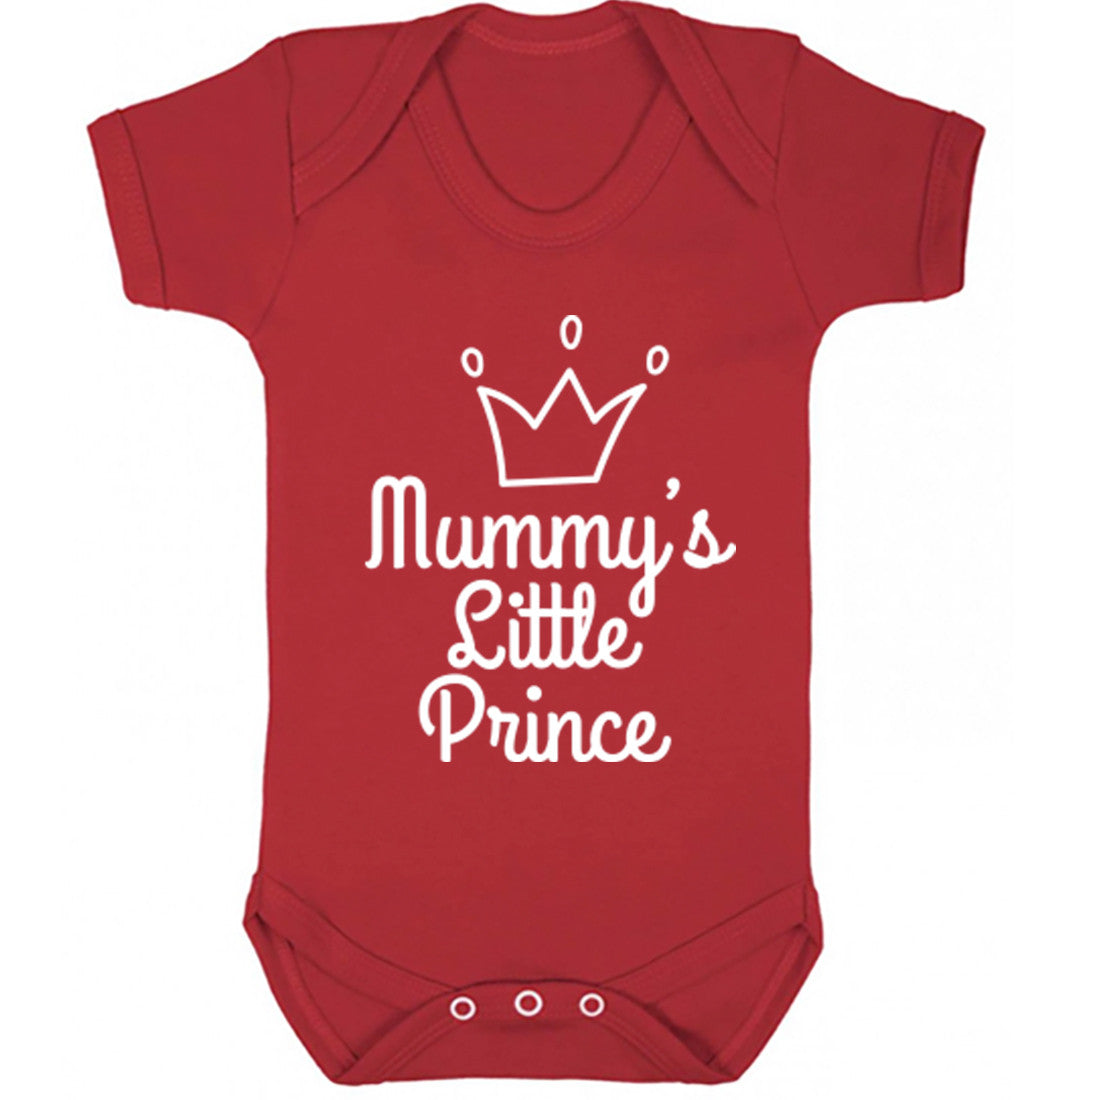 Mummy's Little Prince Baby Vest K1658 - Illustrated Identity Ltd.